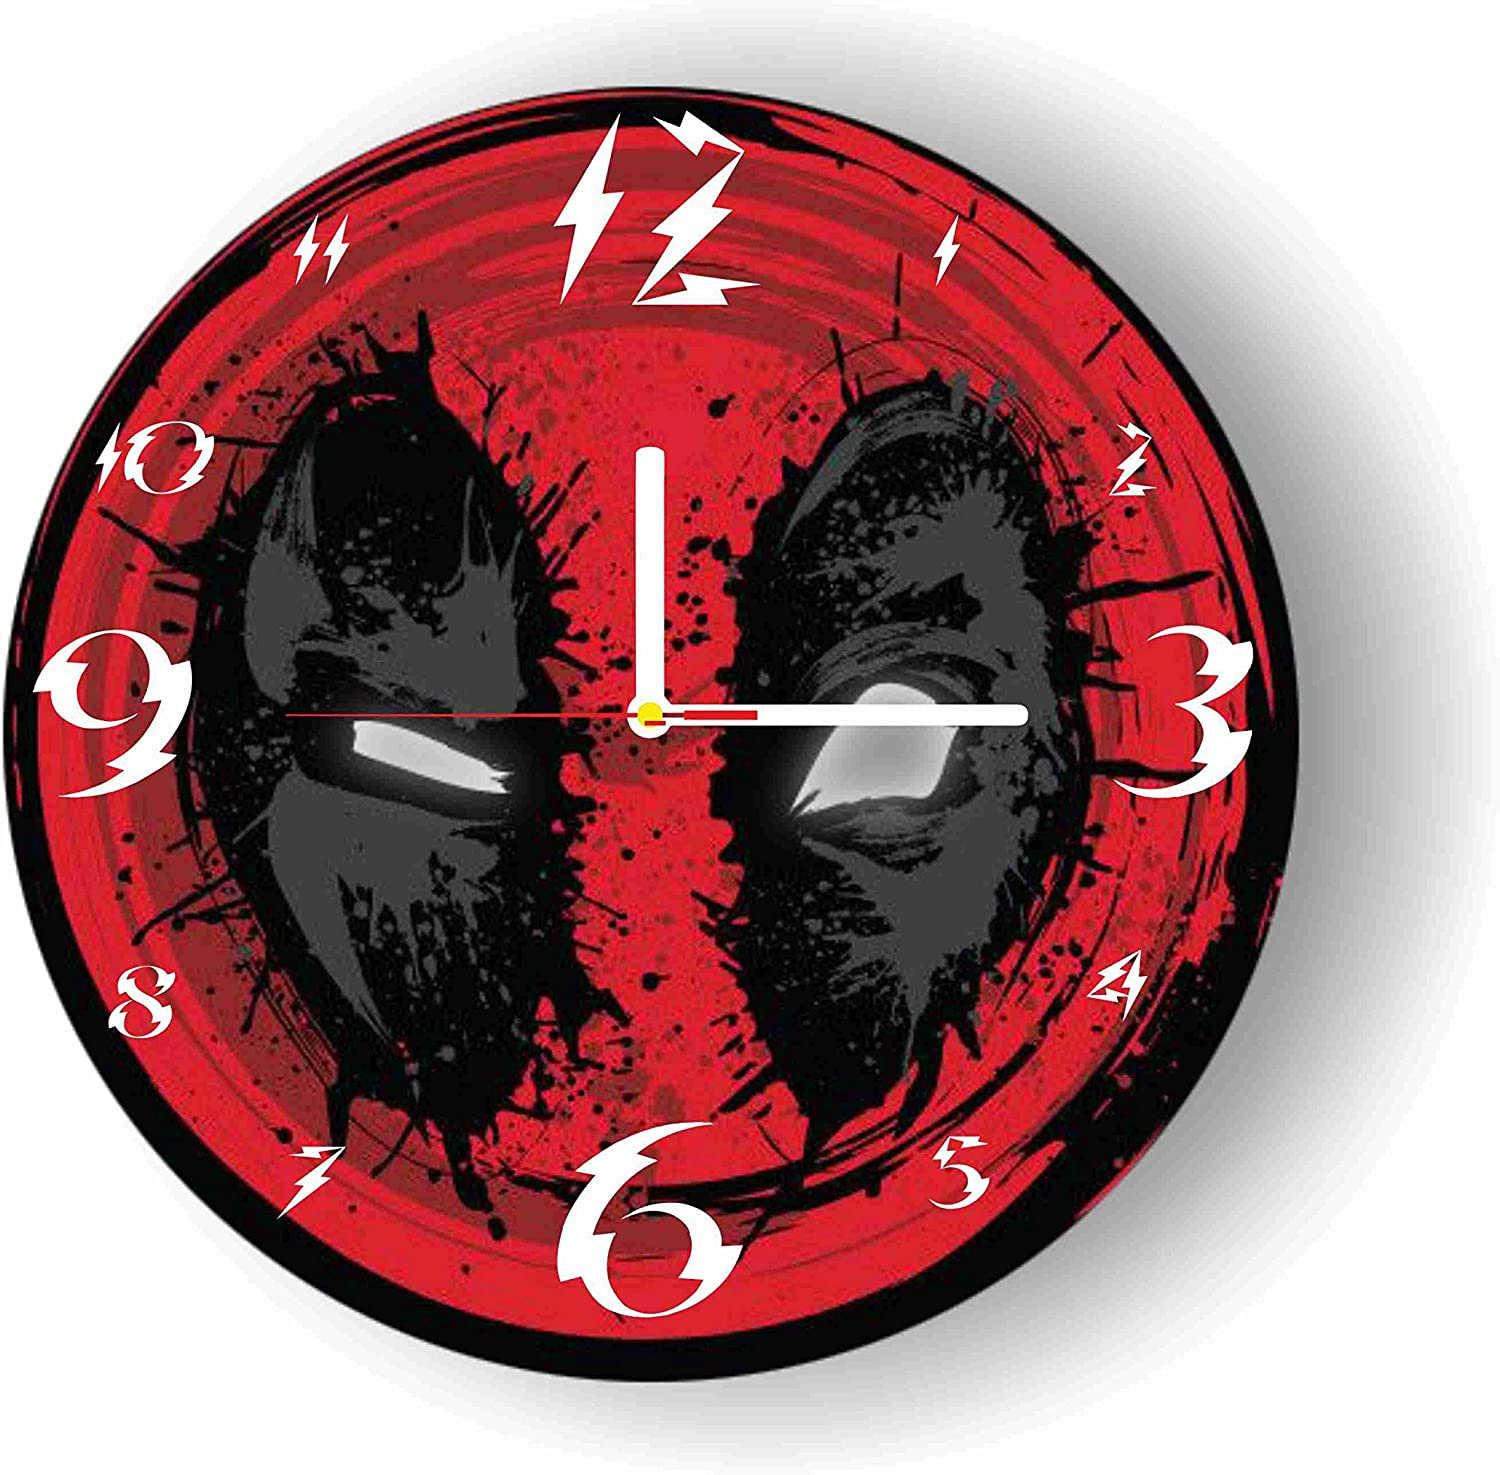 Original Handmade Wall Clock Deadpool 11.8 Get Unique décor for Home or Office – Best Gift Ideas for Kids, Friends, Parents and Your Soul Mates